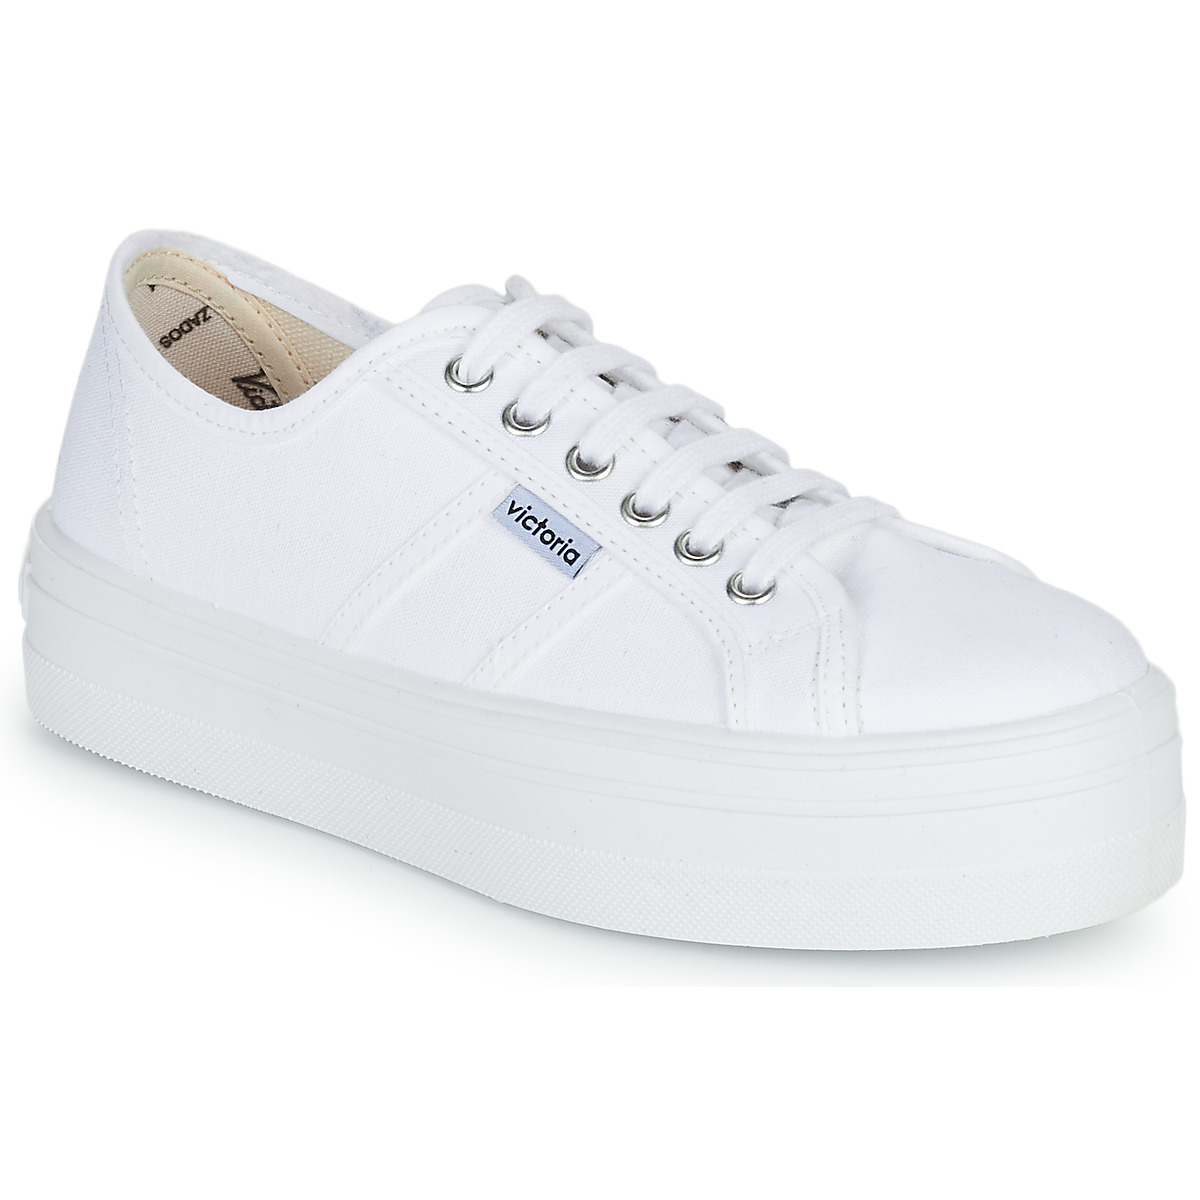 Victoria 6550 Blanc Toile - Chaussures Baskets basses Femme